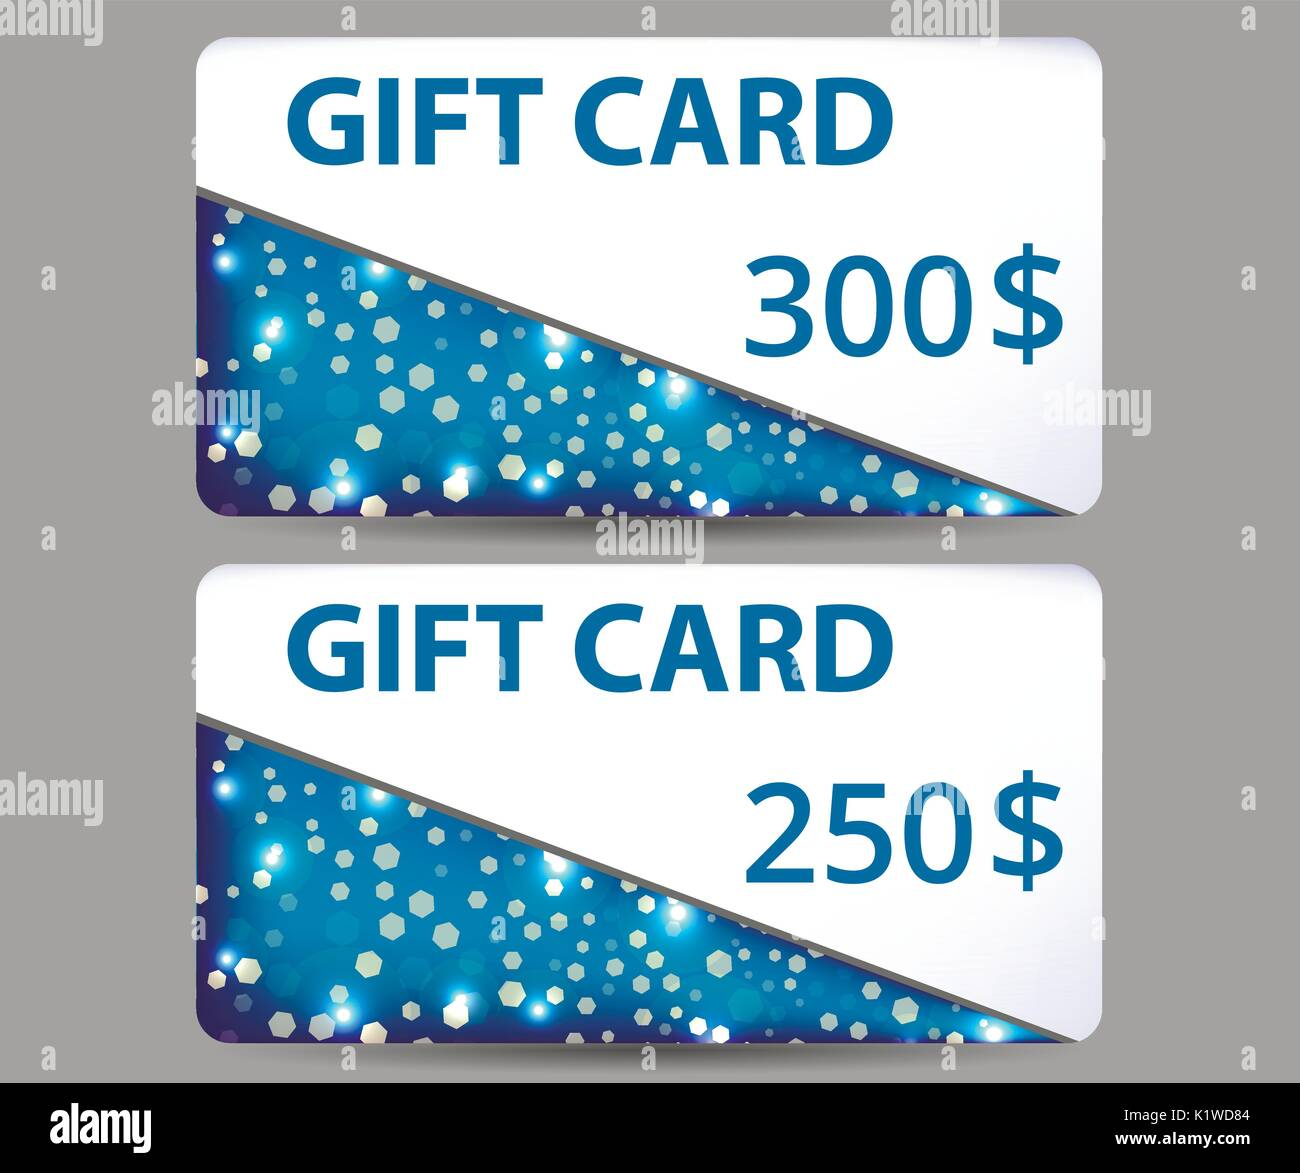 Give yourself, your family and your friends the gift that keeps on giving. Benefits The CITGO Gift Card is more convenient to use than cash. Use at more than 5, locations in 29 states.